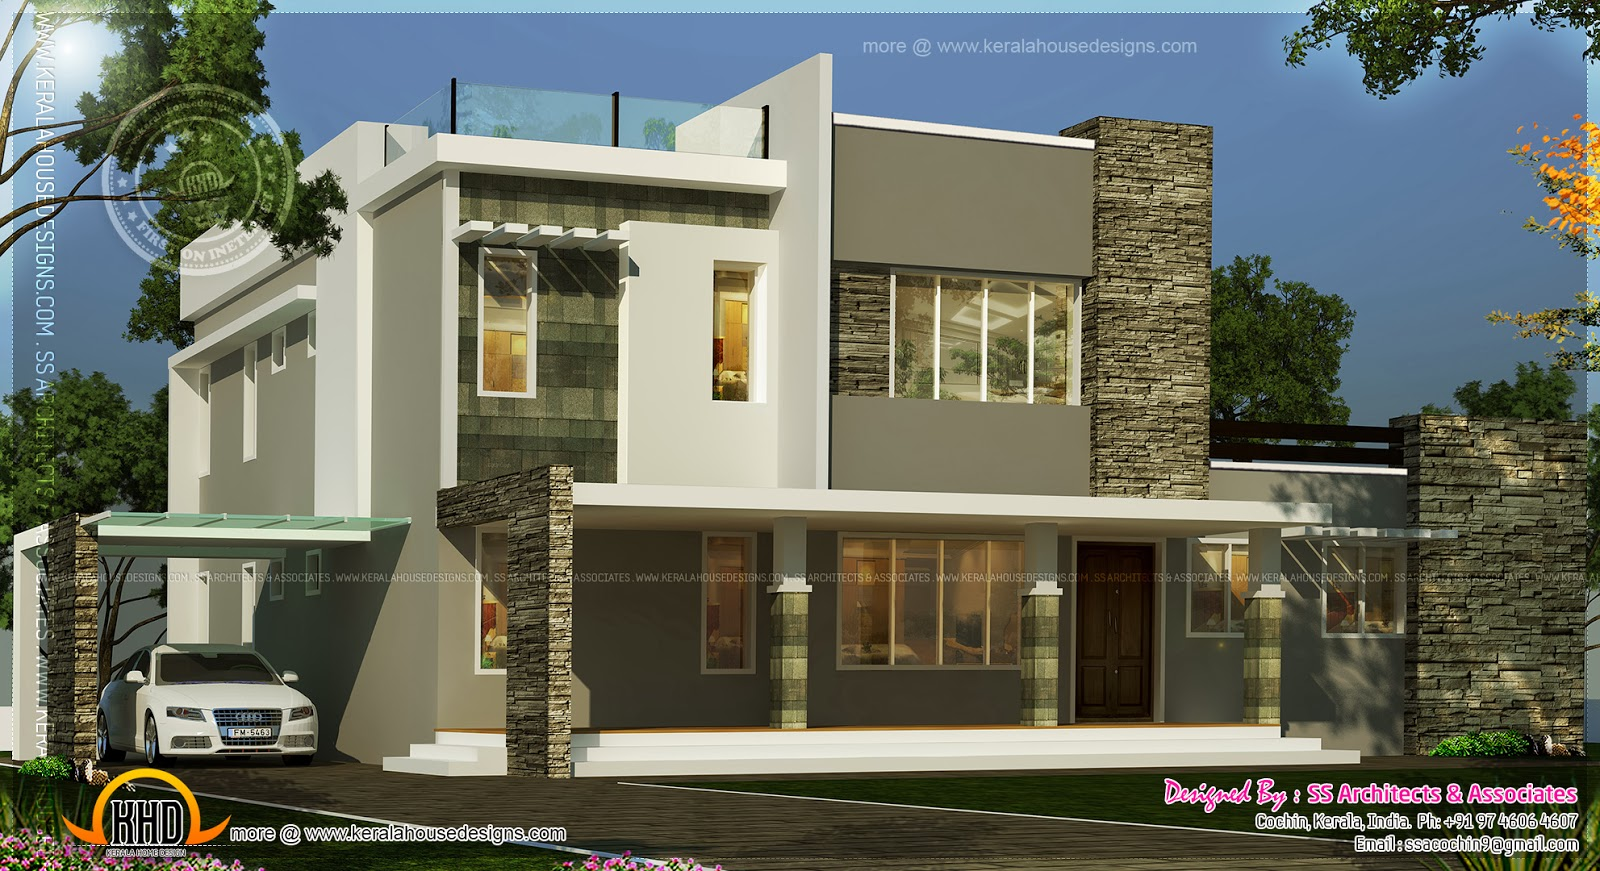 Contemporary Flat Roof Villa Plan In 2650 Square Feet